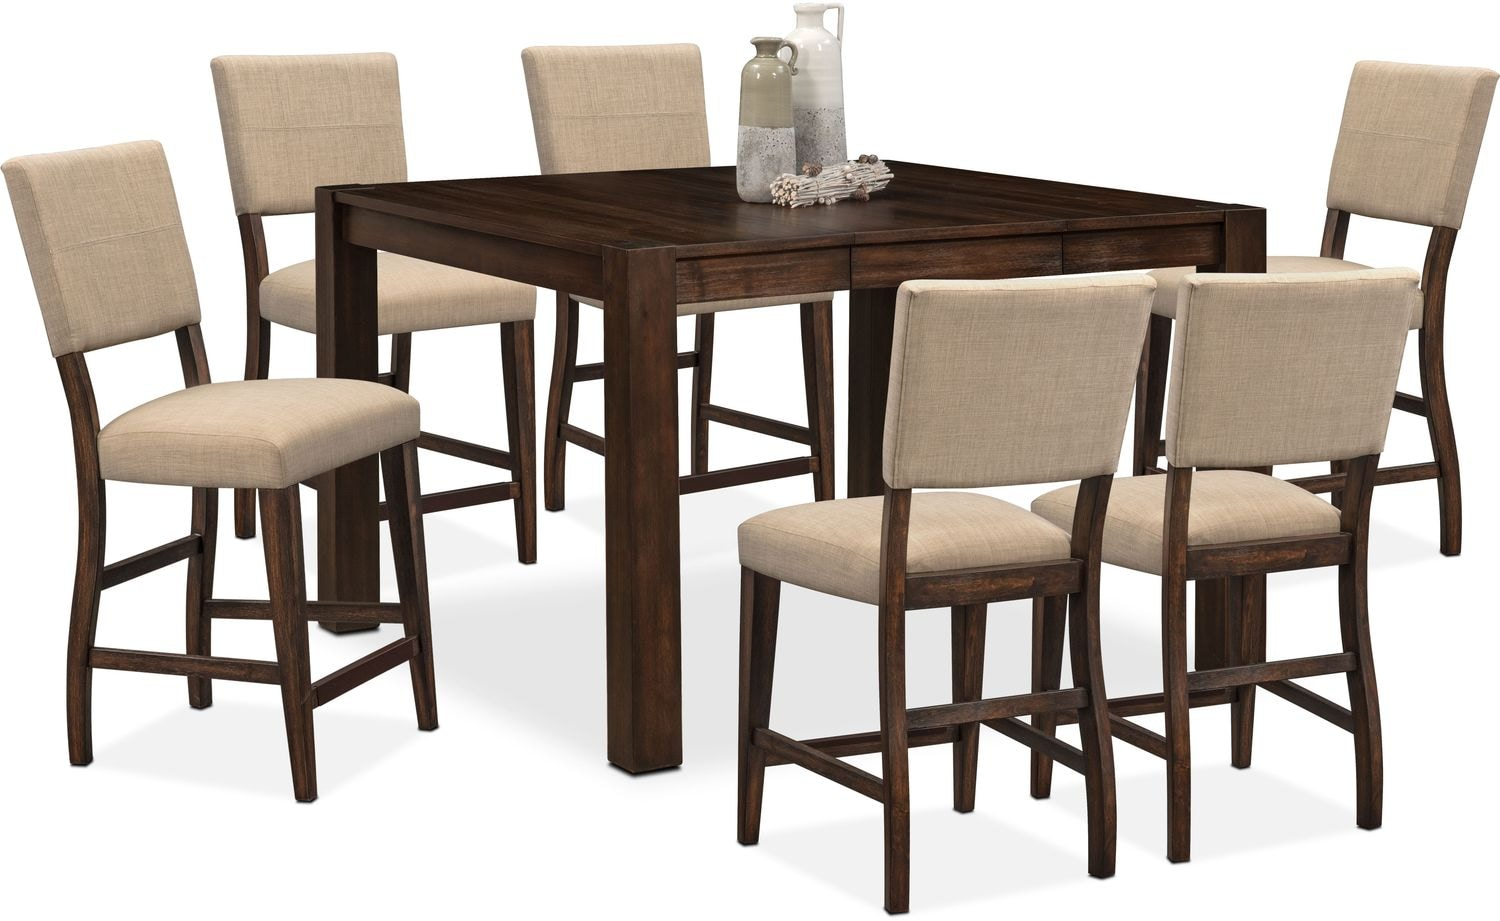 upholstered counter height chairs dining chair tribeca table and 6 side